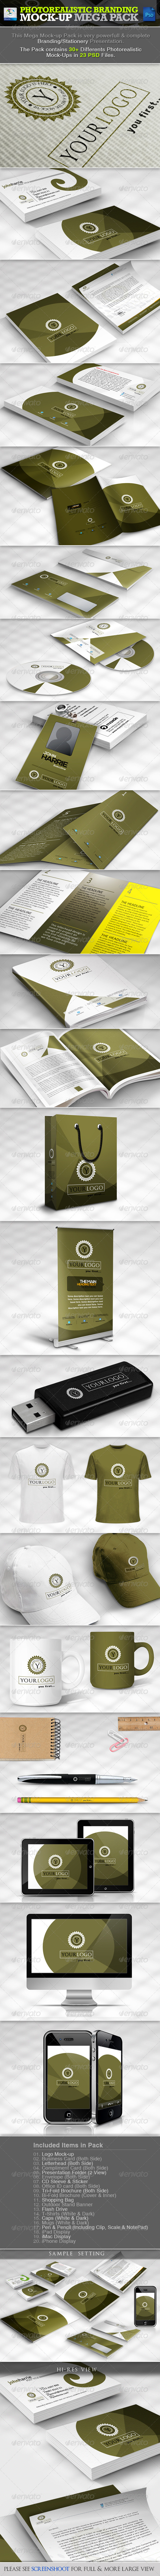 GraphicRiver Photorealistic Branding Mock-up Mega Pack 3359729